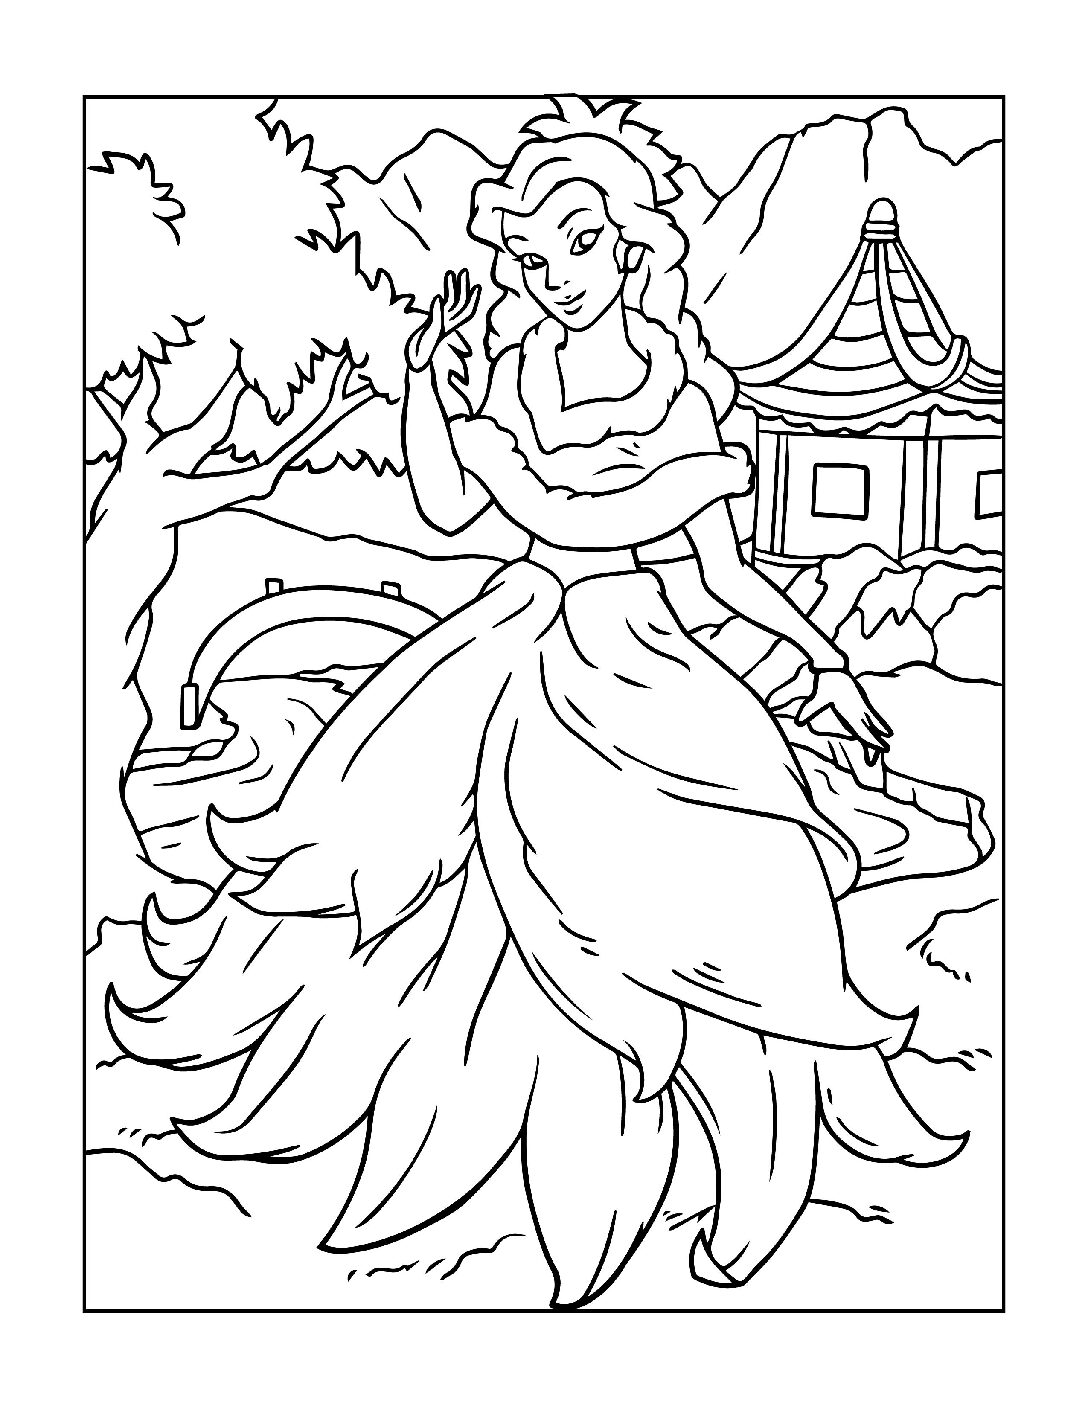 Coloring-Pages-Princess-10-01-pdf Free Printable Princesses Colouring Pages